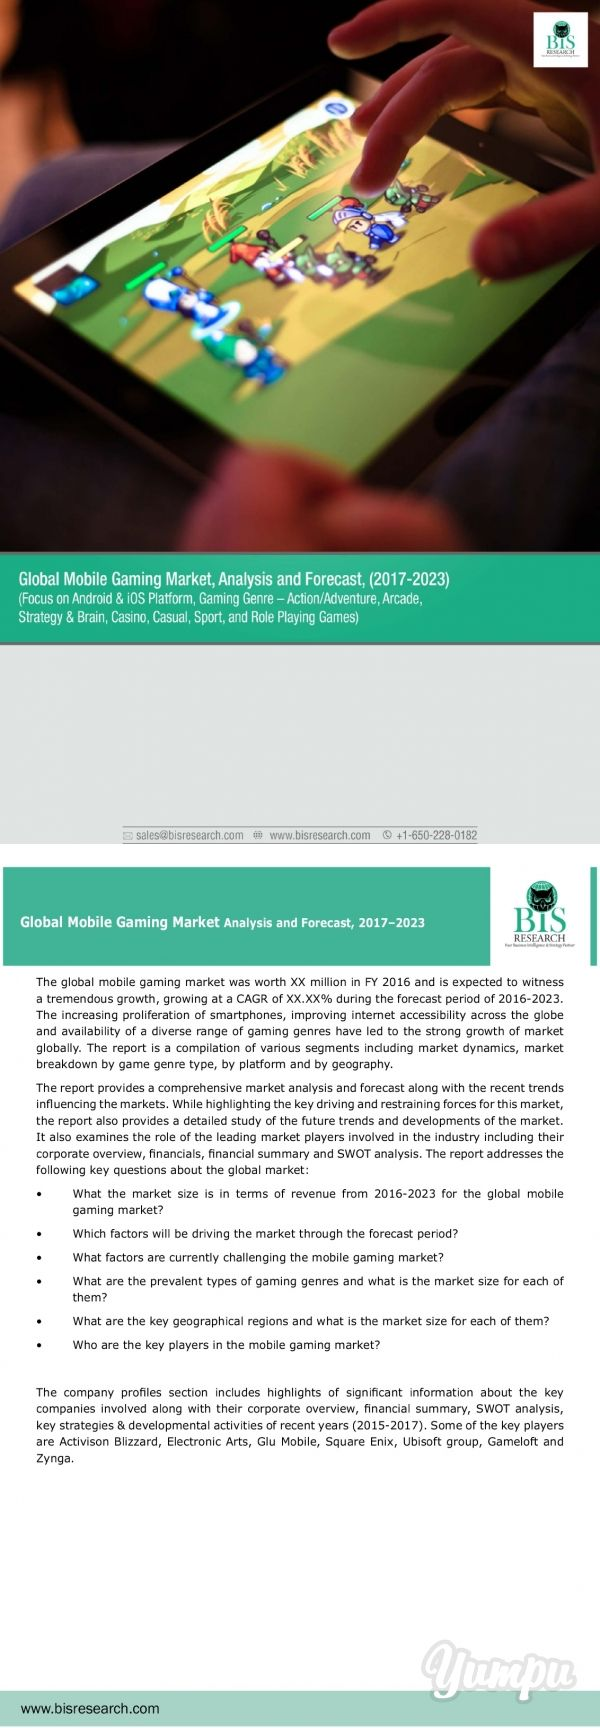 Global Mobile Gaming Market Research 2017-2023 - Magazine with 10 pages: The increasing proliferation of smartphones, improving internet accessibility across the globe and availability of a diverse range of gaming genres have led to the strong growth of the market globally.